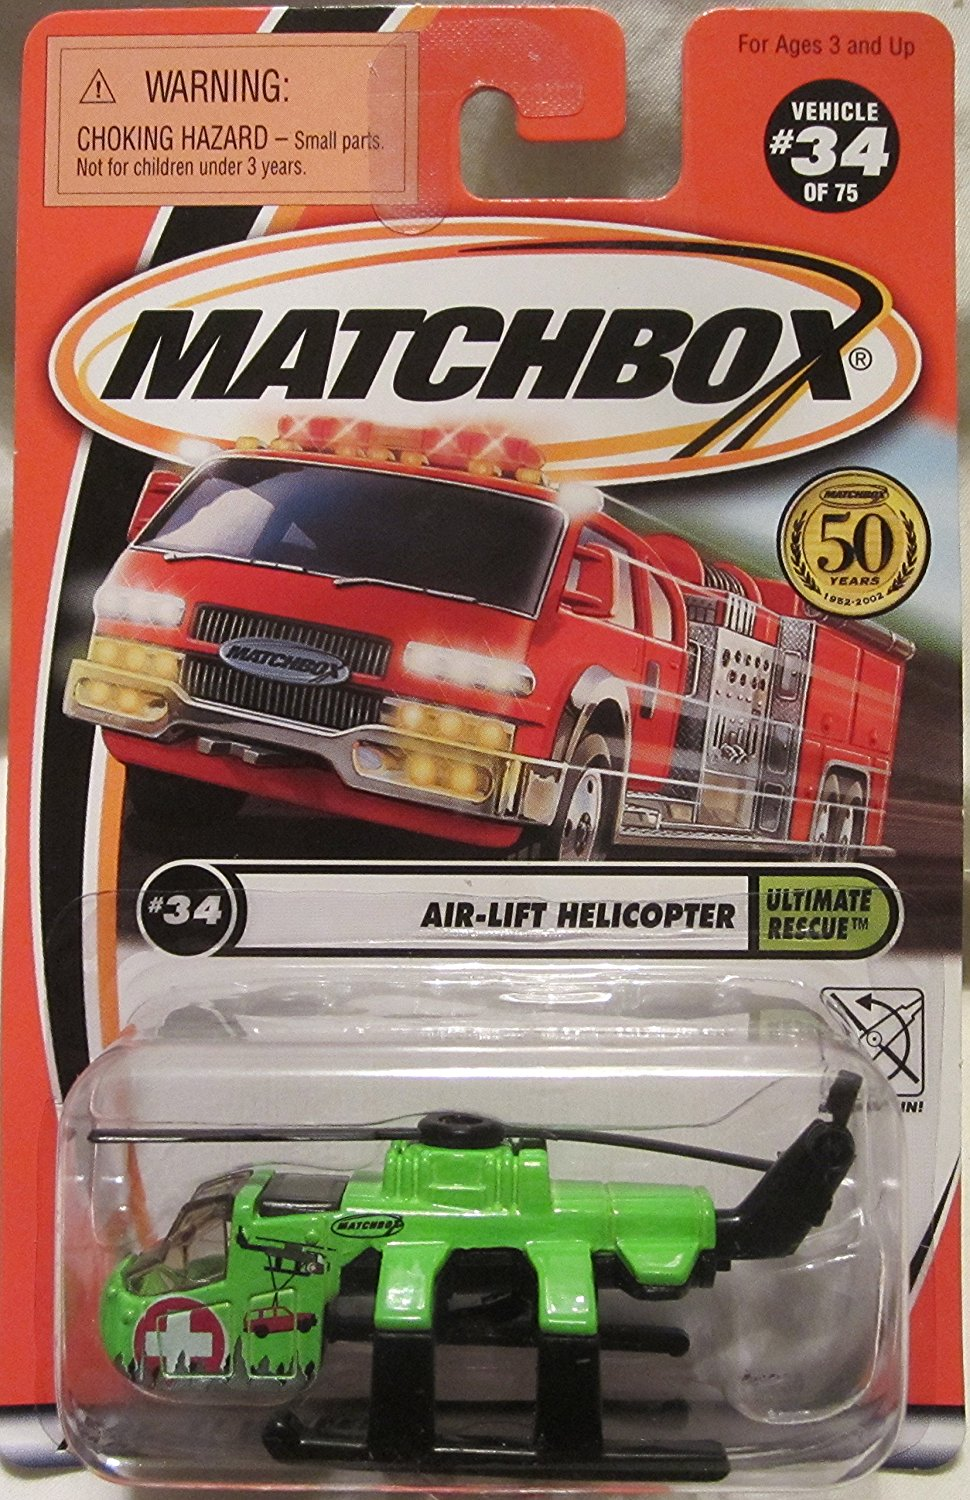 2001 Ultimate Rescue #34 of 75 Air-Lift Helicopter Green, 1:64 Scale By Matchbox by